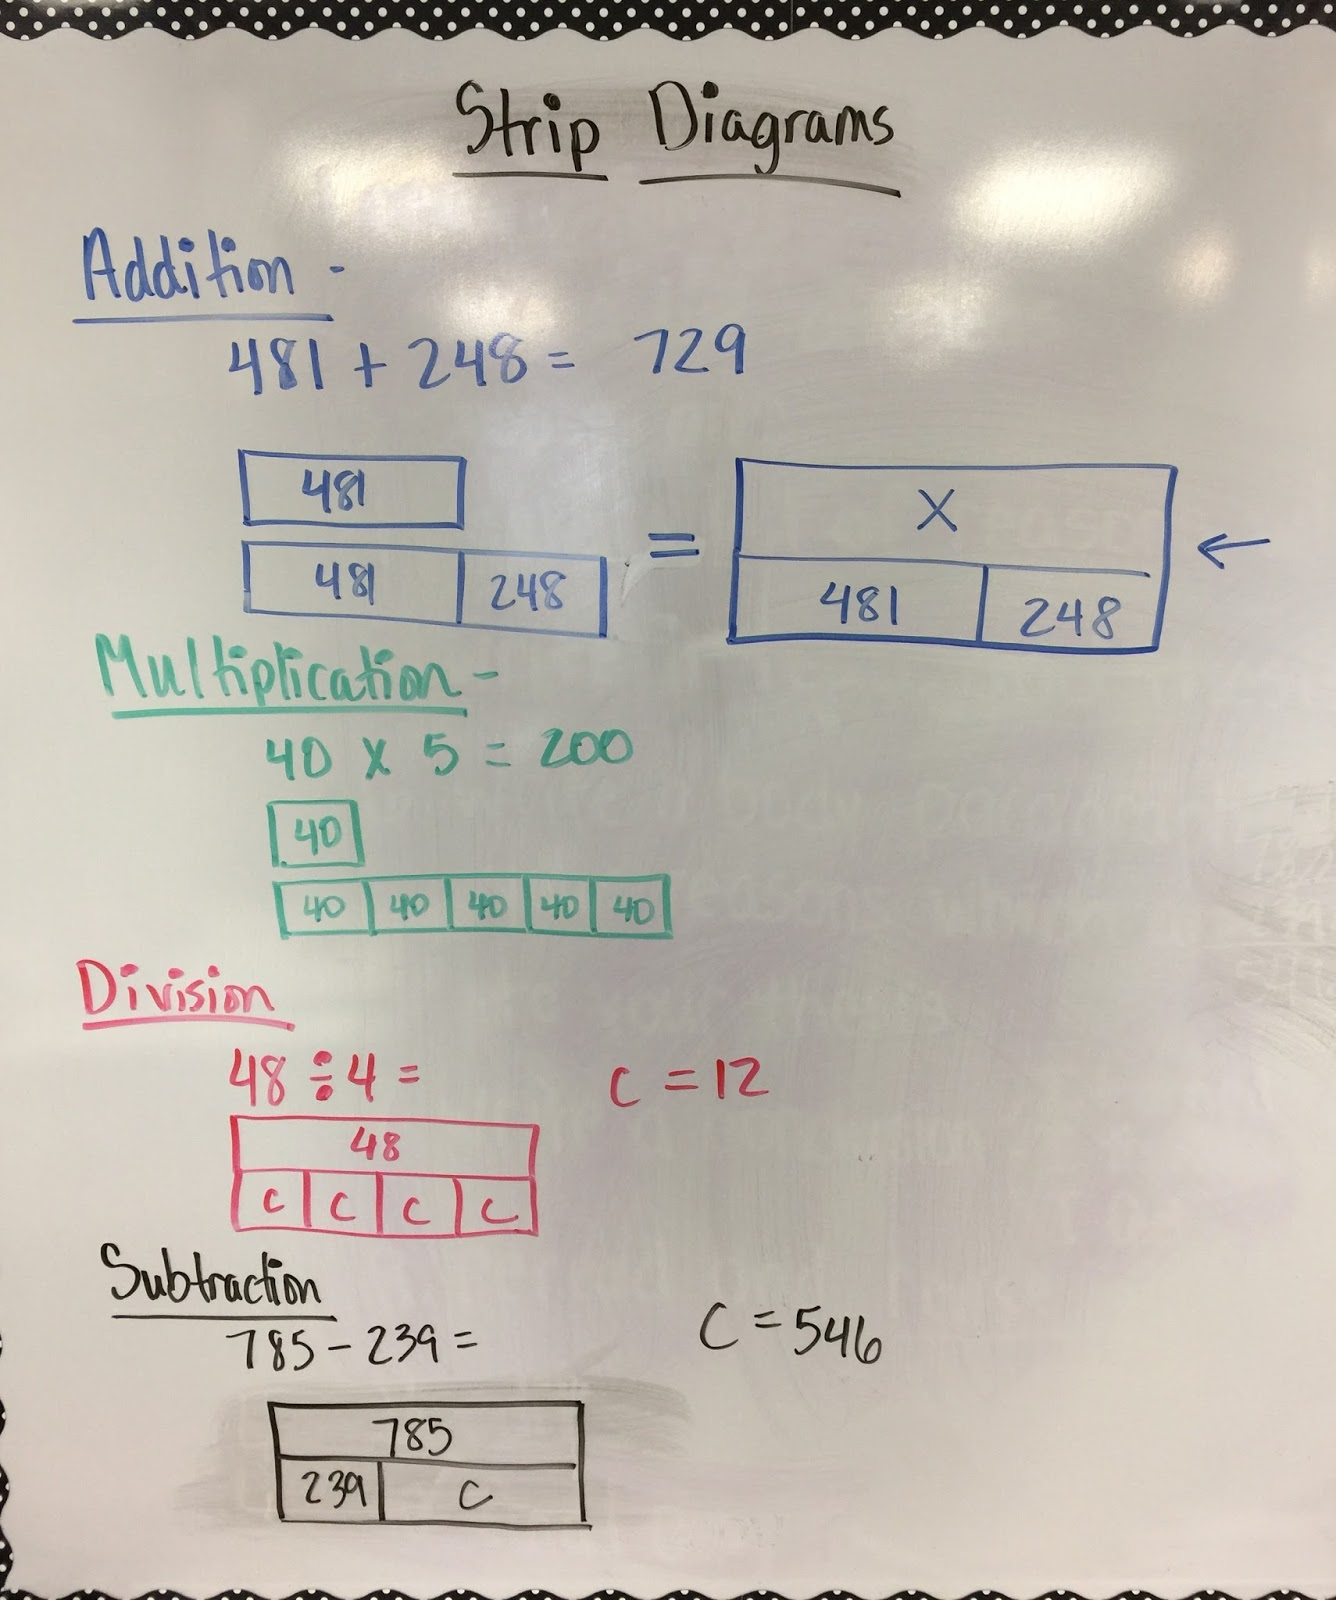 strip diagram anchor chart wiring color abbreviations the 4th grade may niacs diagrams to model computation most students at this point can read a word problem figure out operation s needed and solve what might be little more difficult for